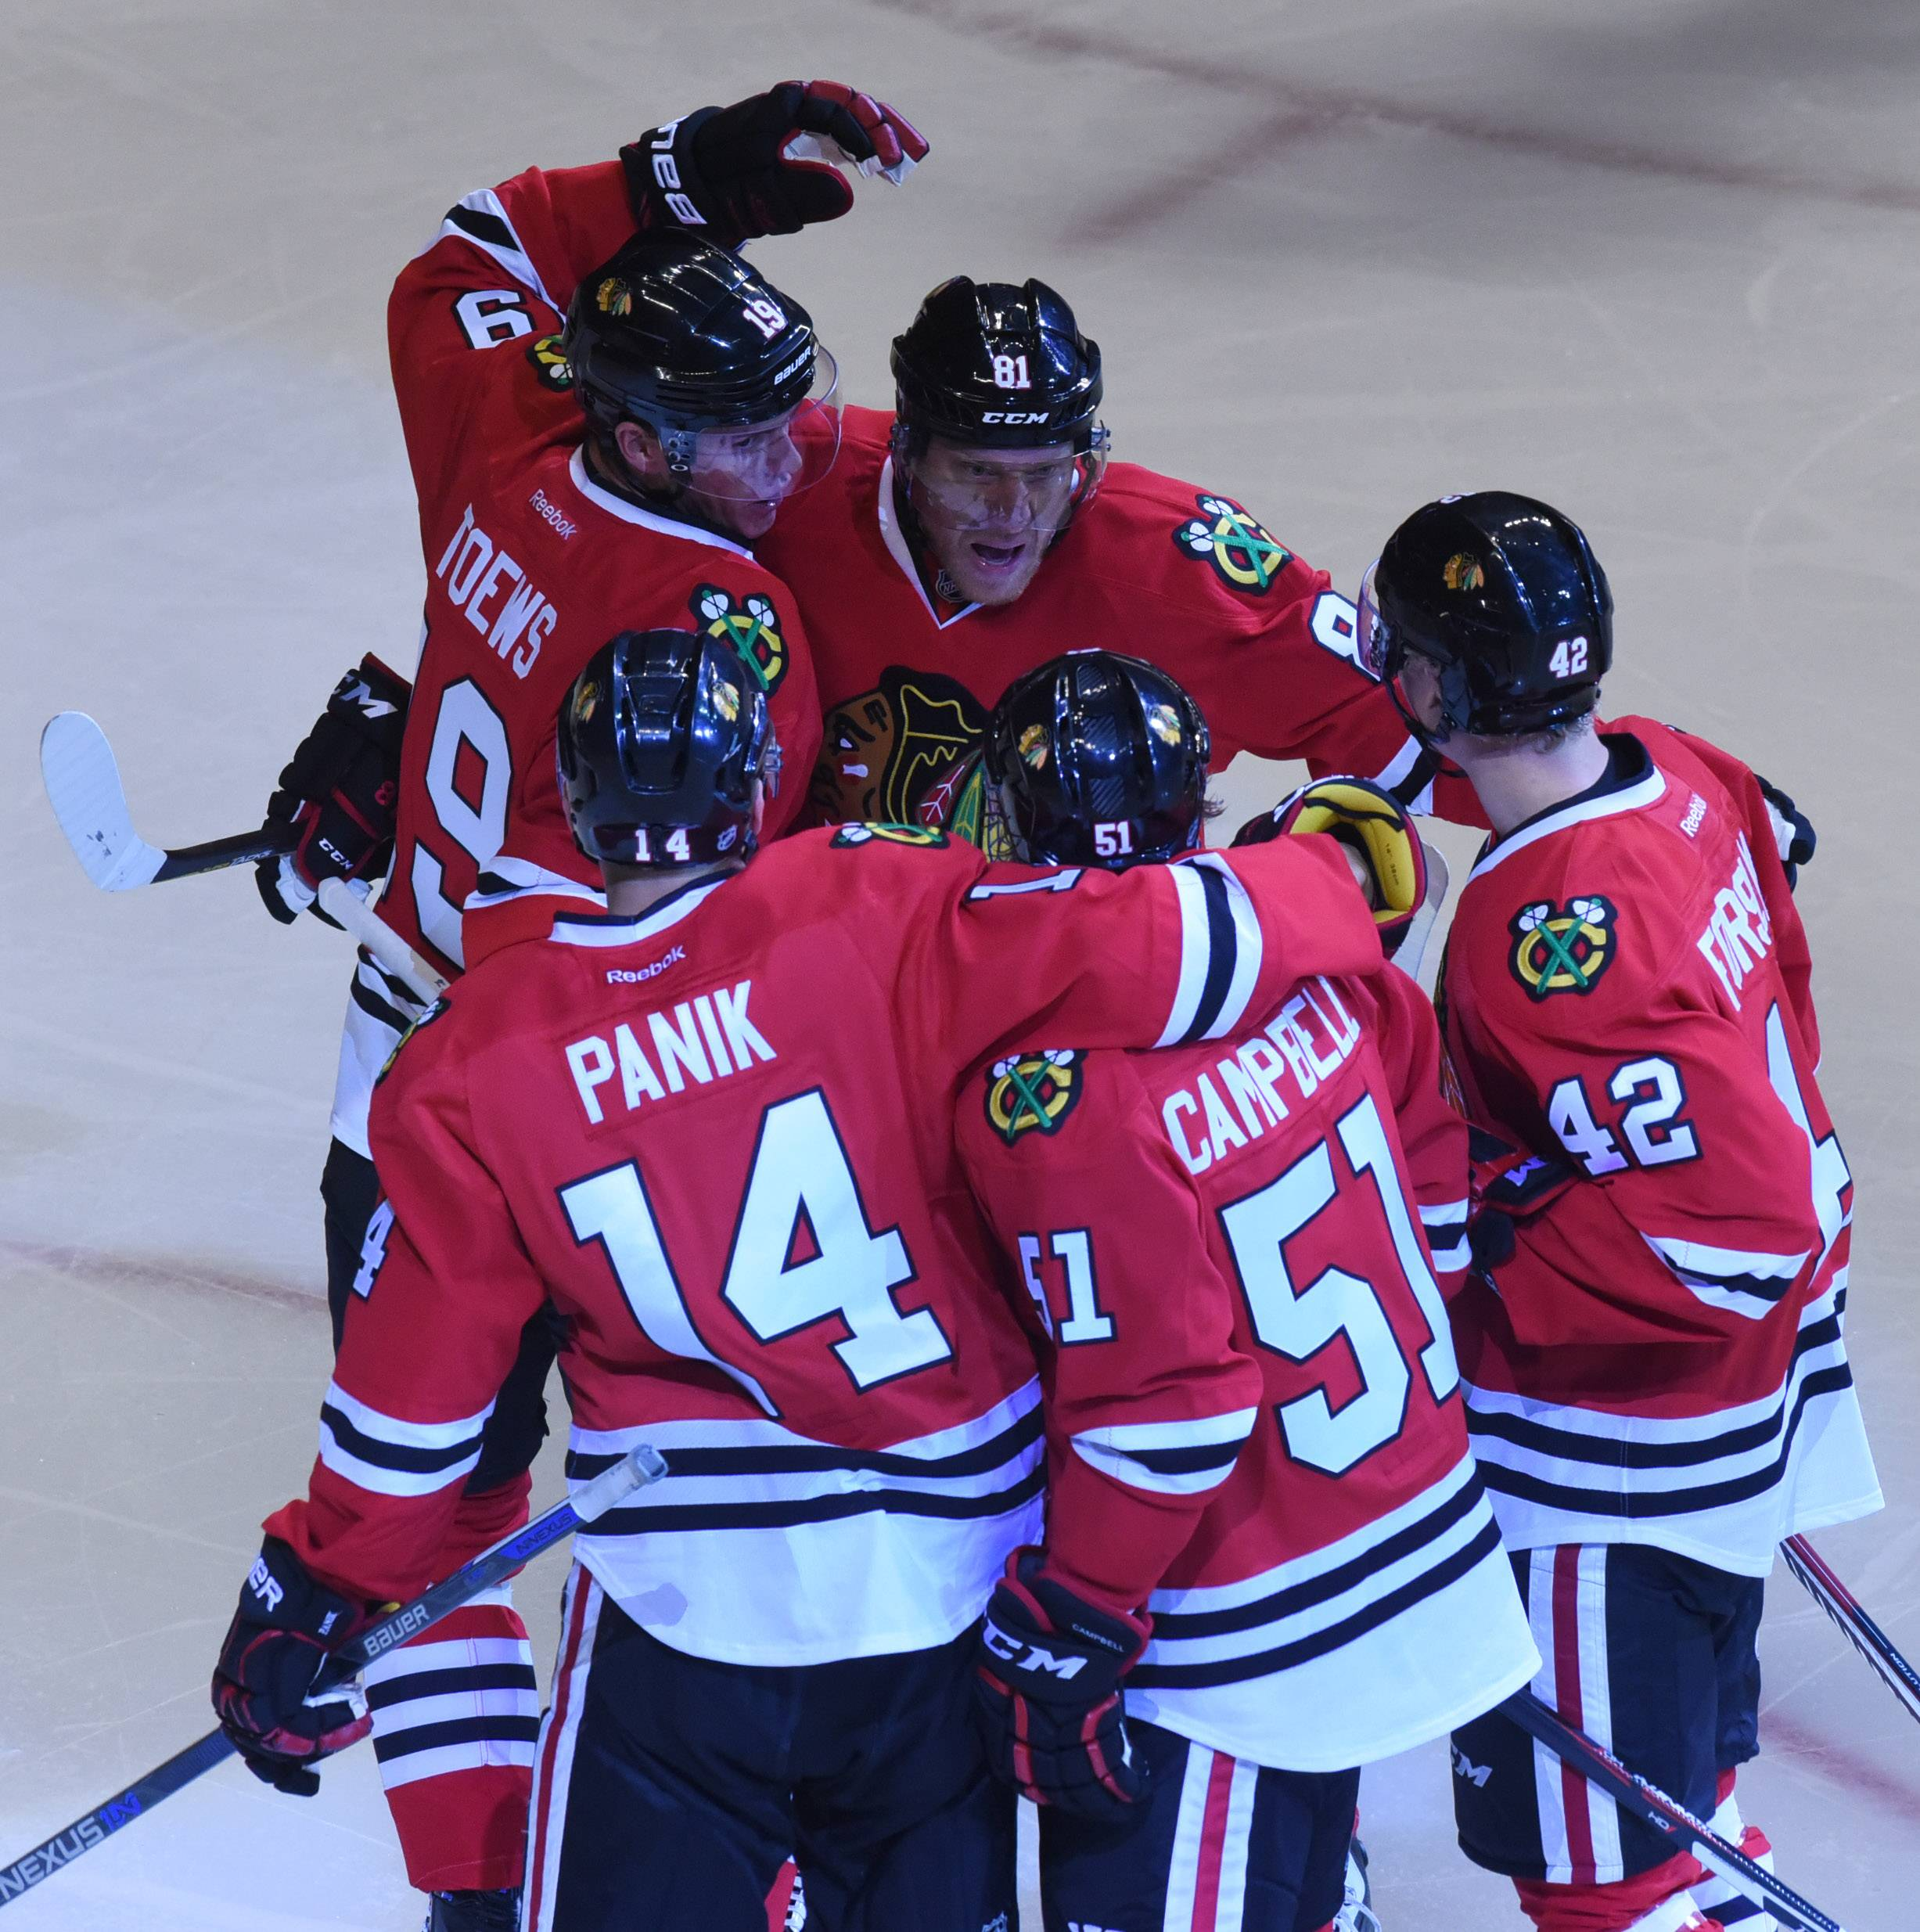 Left wing Richard Panik celebrates with his teammates after scoring on a first-period power play against the St. Louis Blues last season. The Blackhawks haven't had the most potent power plays in the Joel Quenneville era, and that's not the end of the world to Kevin Dineen. The Hawks' 53-year-old assistant would rather see his special-teams unit come through in the clutch more often.